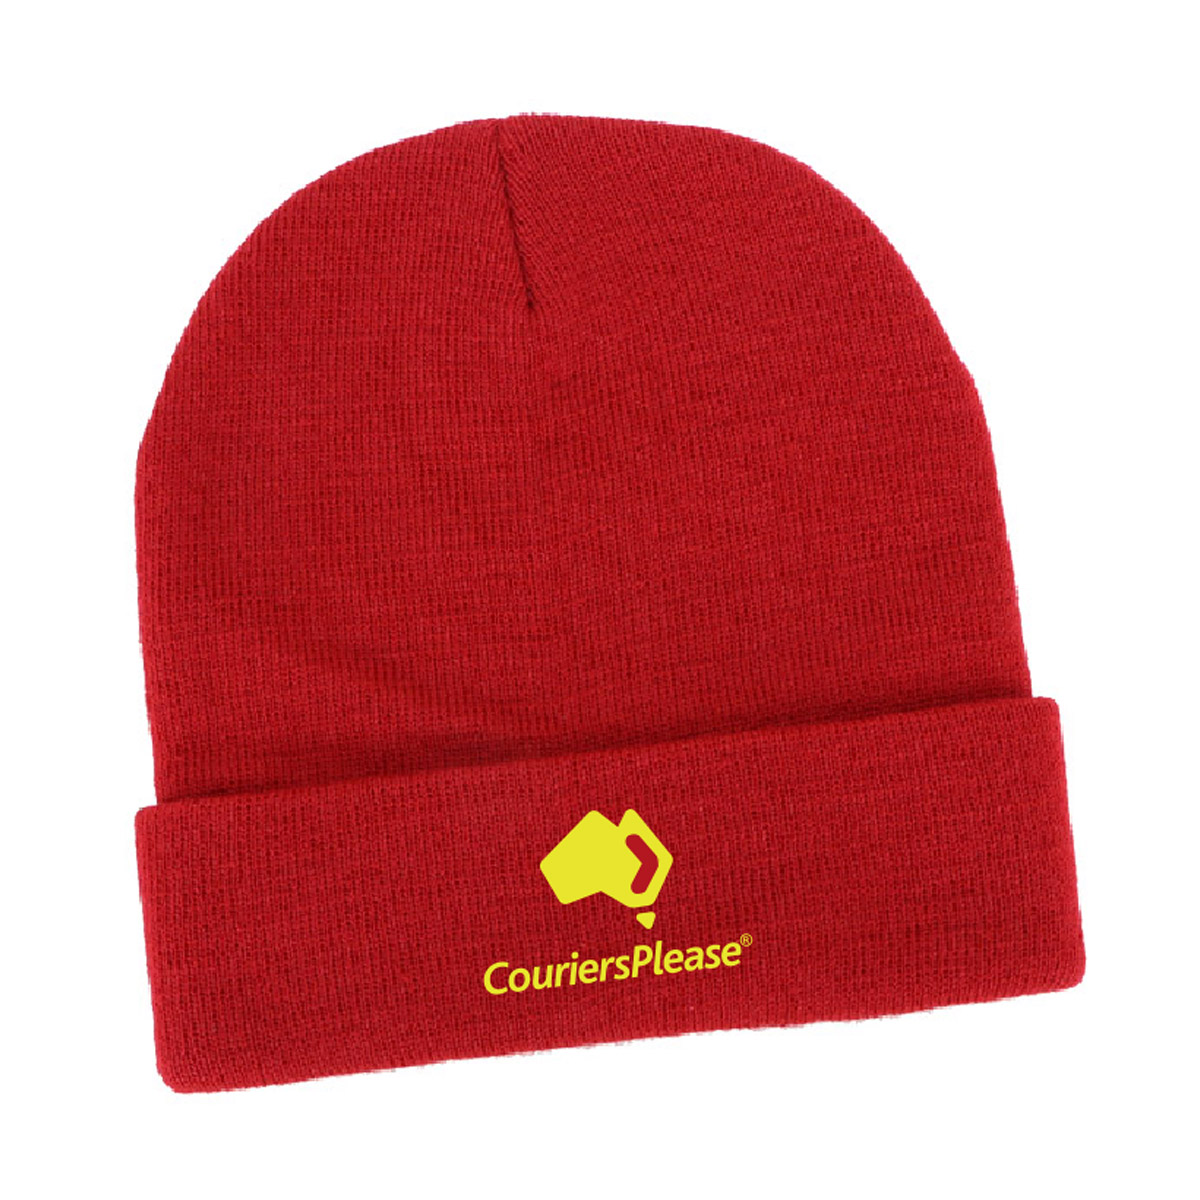 OS1743 - couriers please - beanie